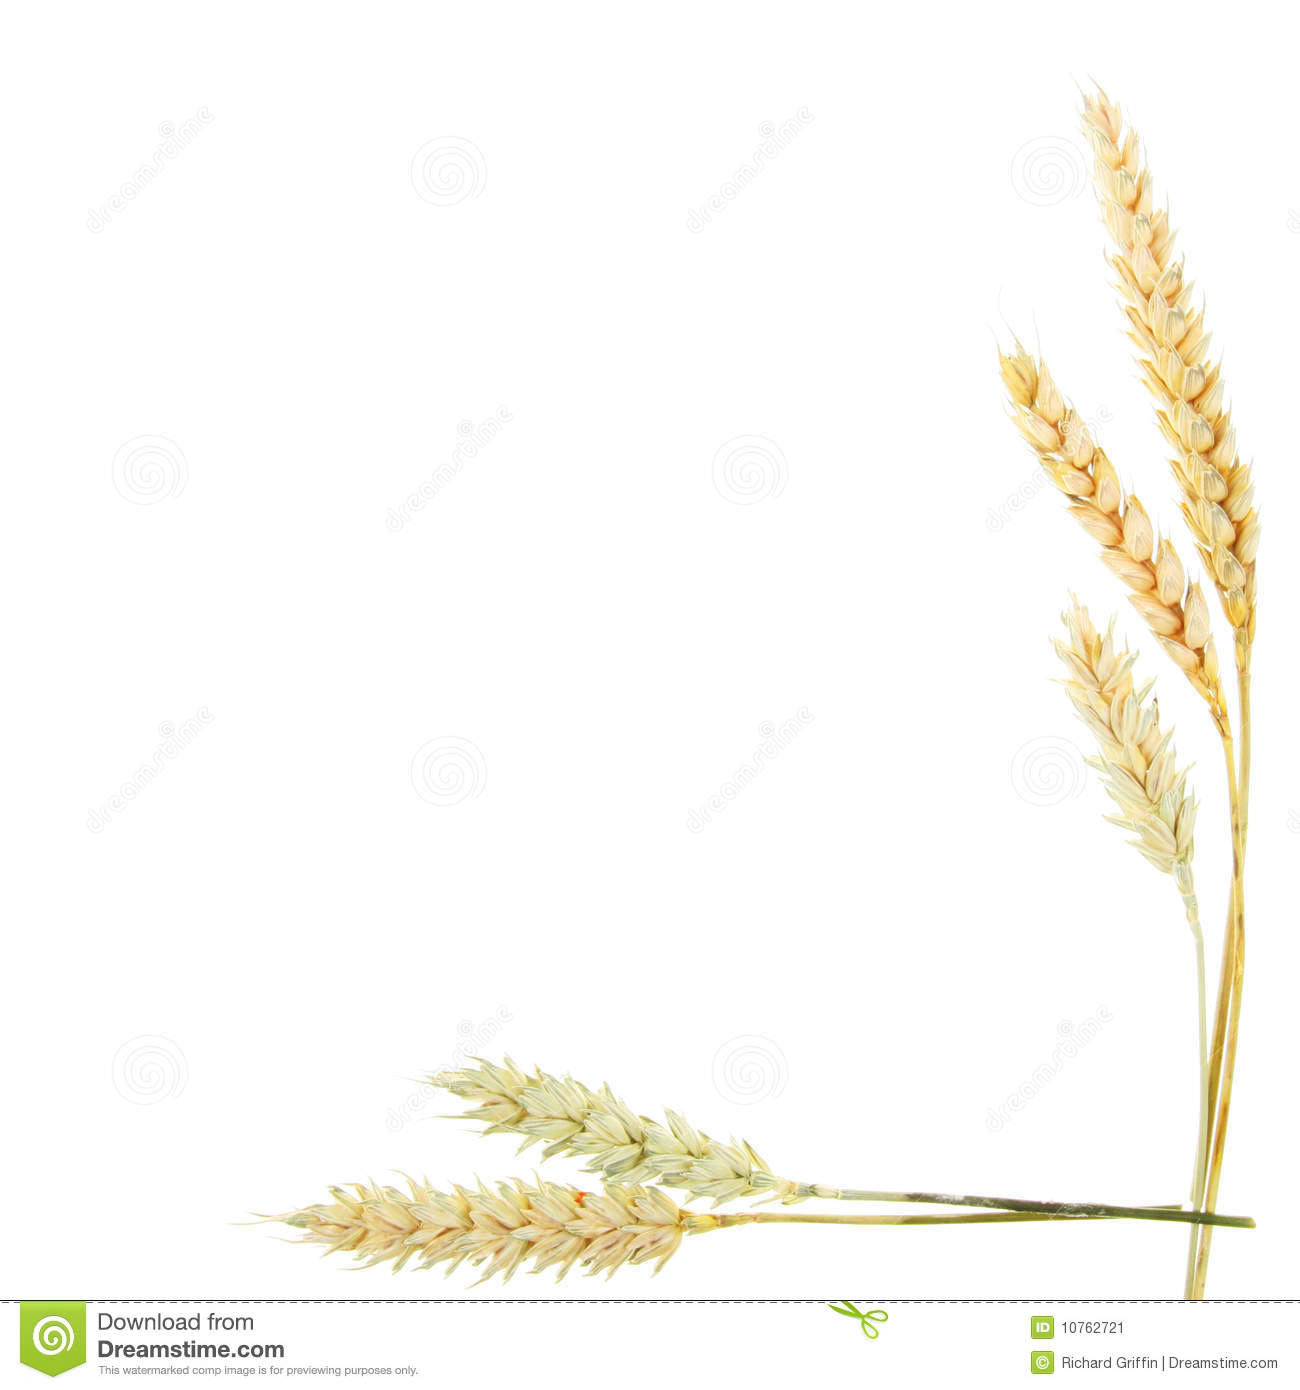 Free Clipart Images Wheat | Free | Download